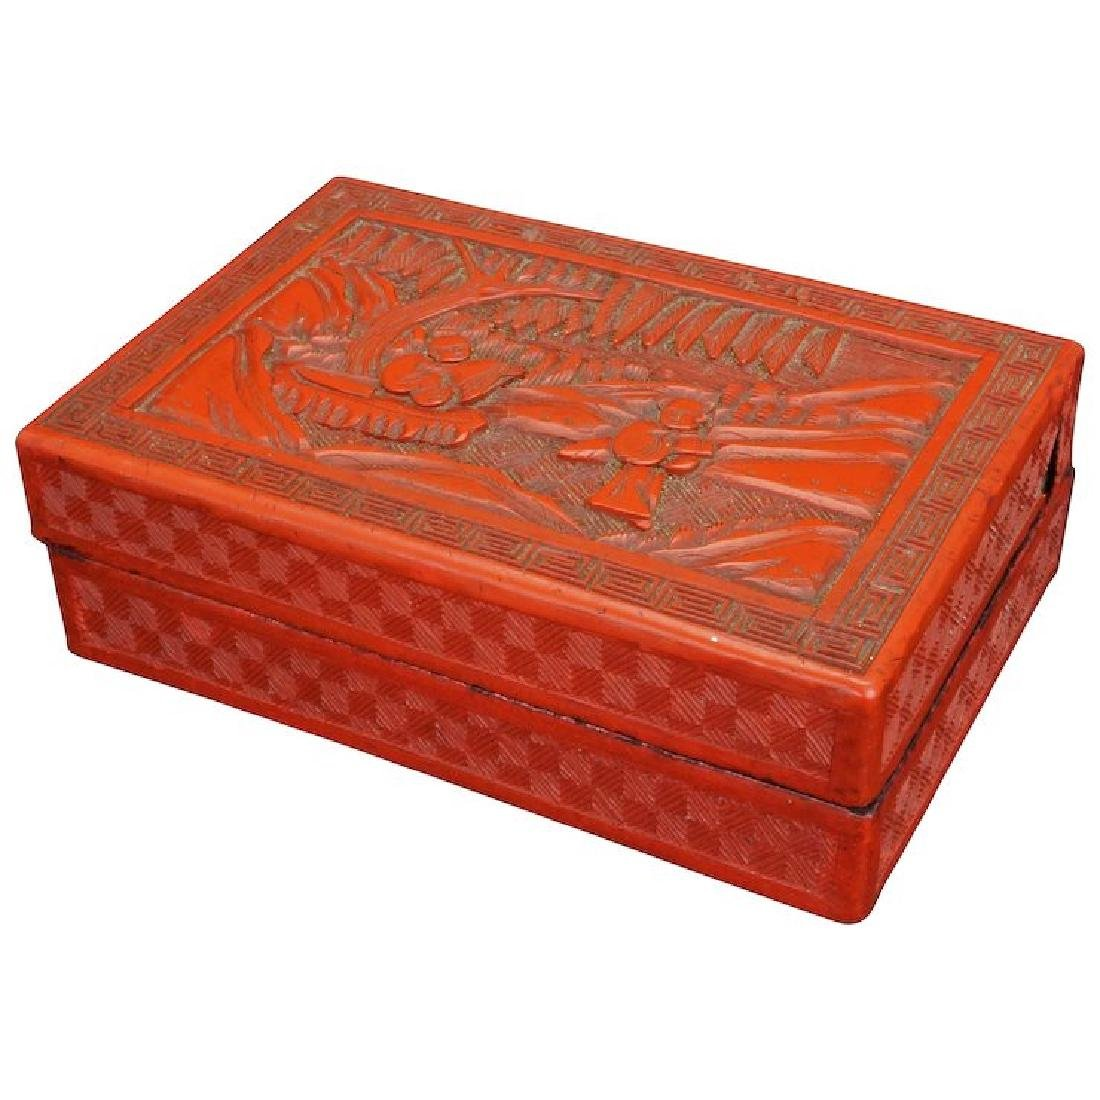 Chinese cinnabar rectangular lacquer box on wood 19th